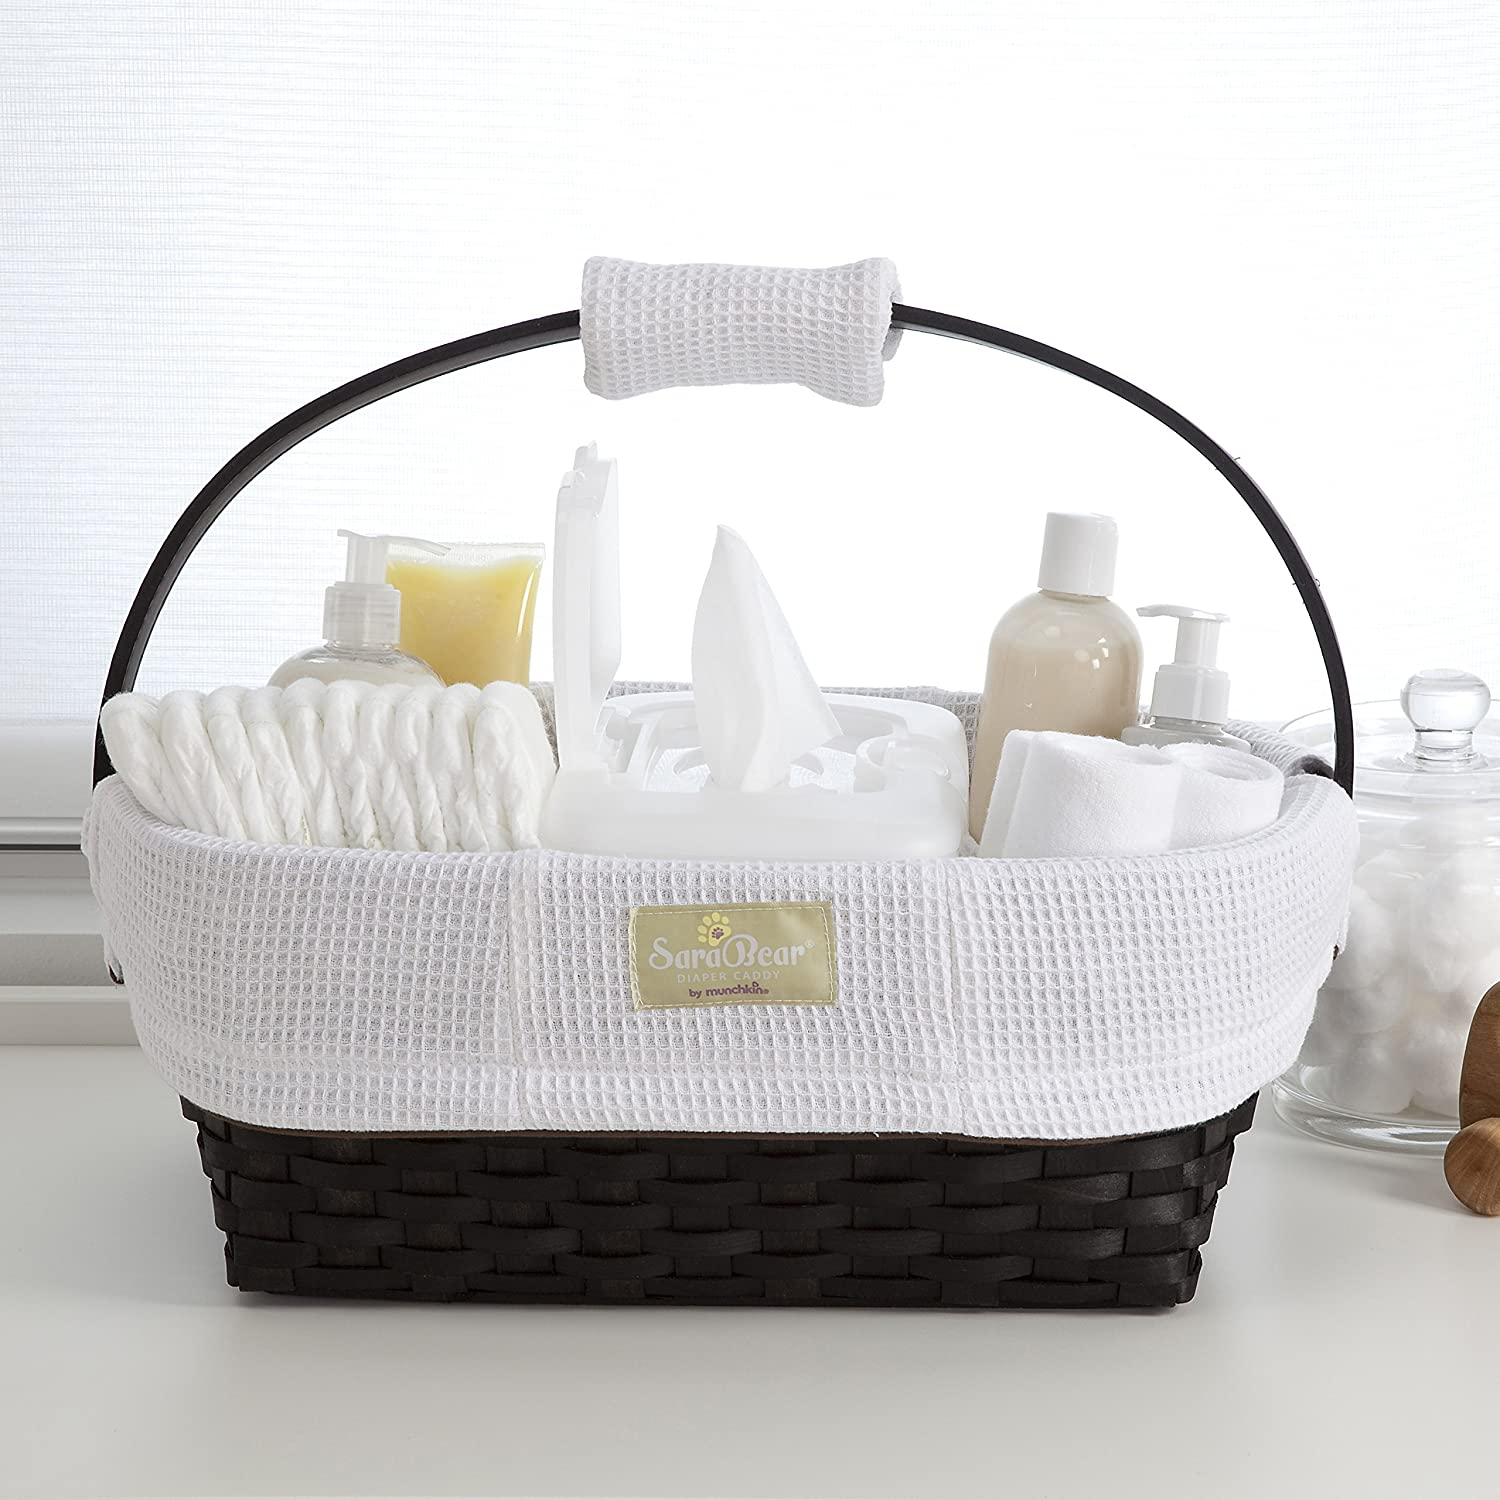 Amazon.com : Munchkin Portable Diaper Caddy, White : Nursery Storage  Containers : Baby